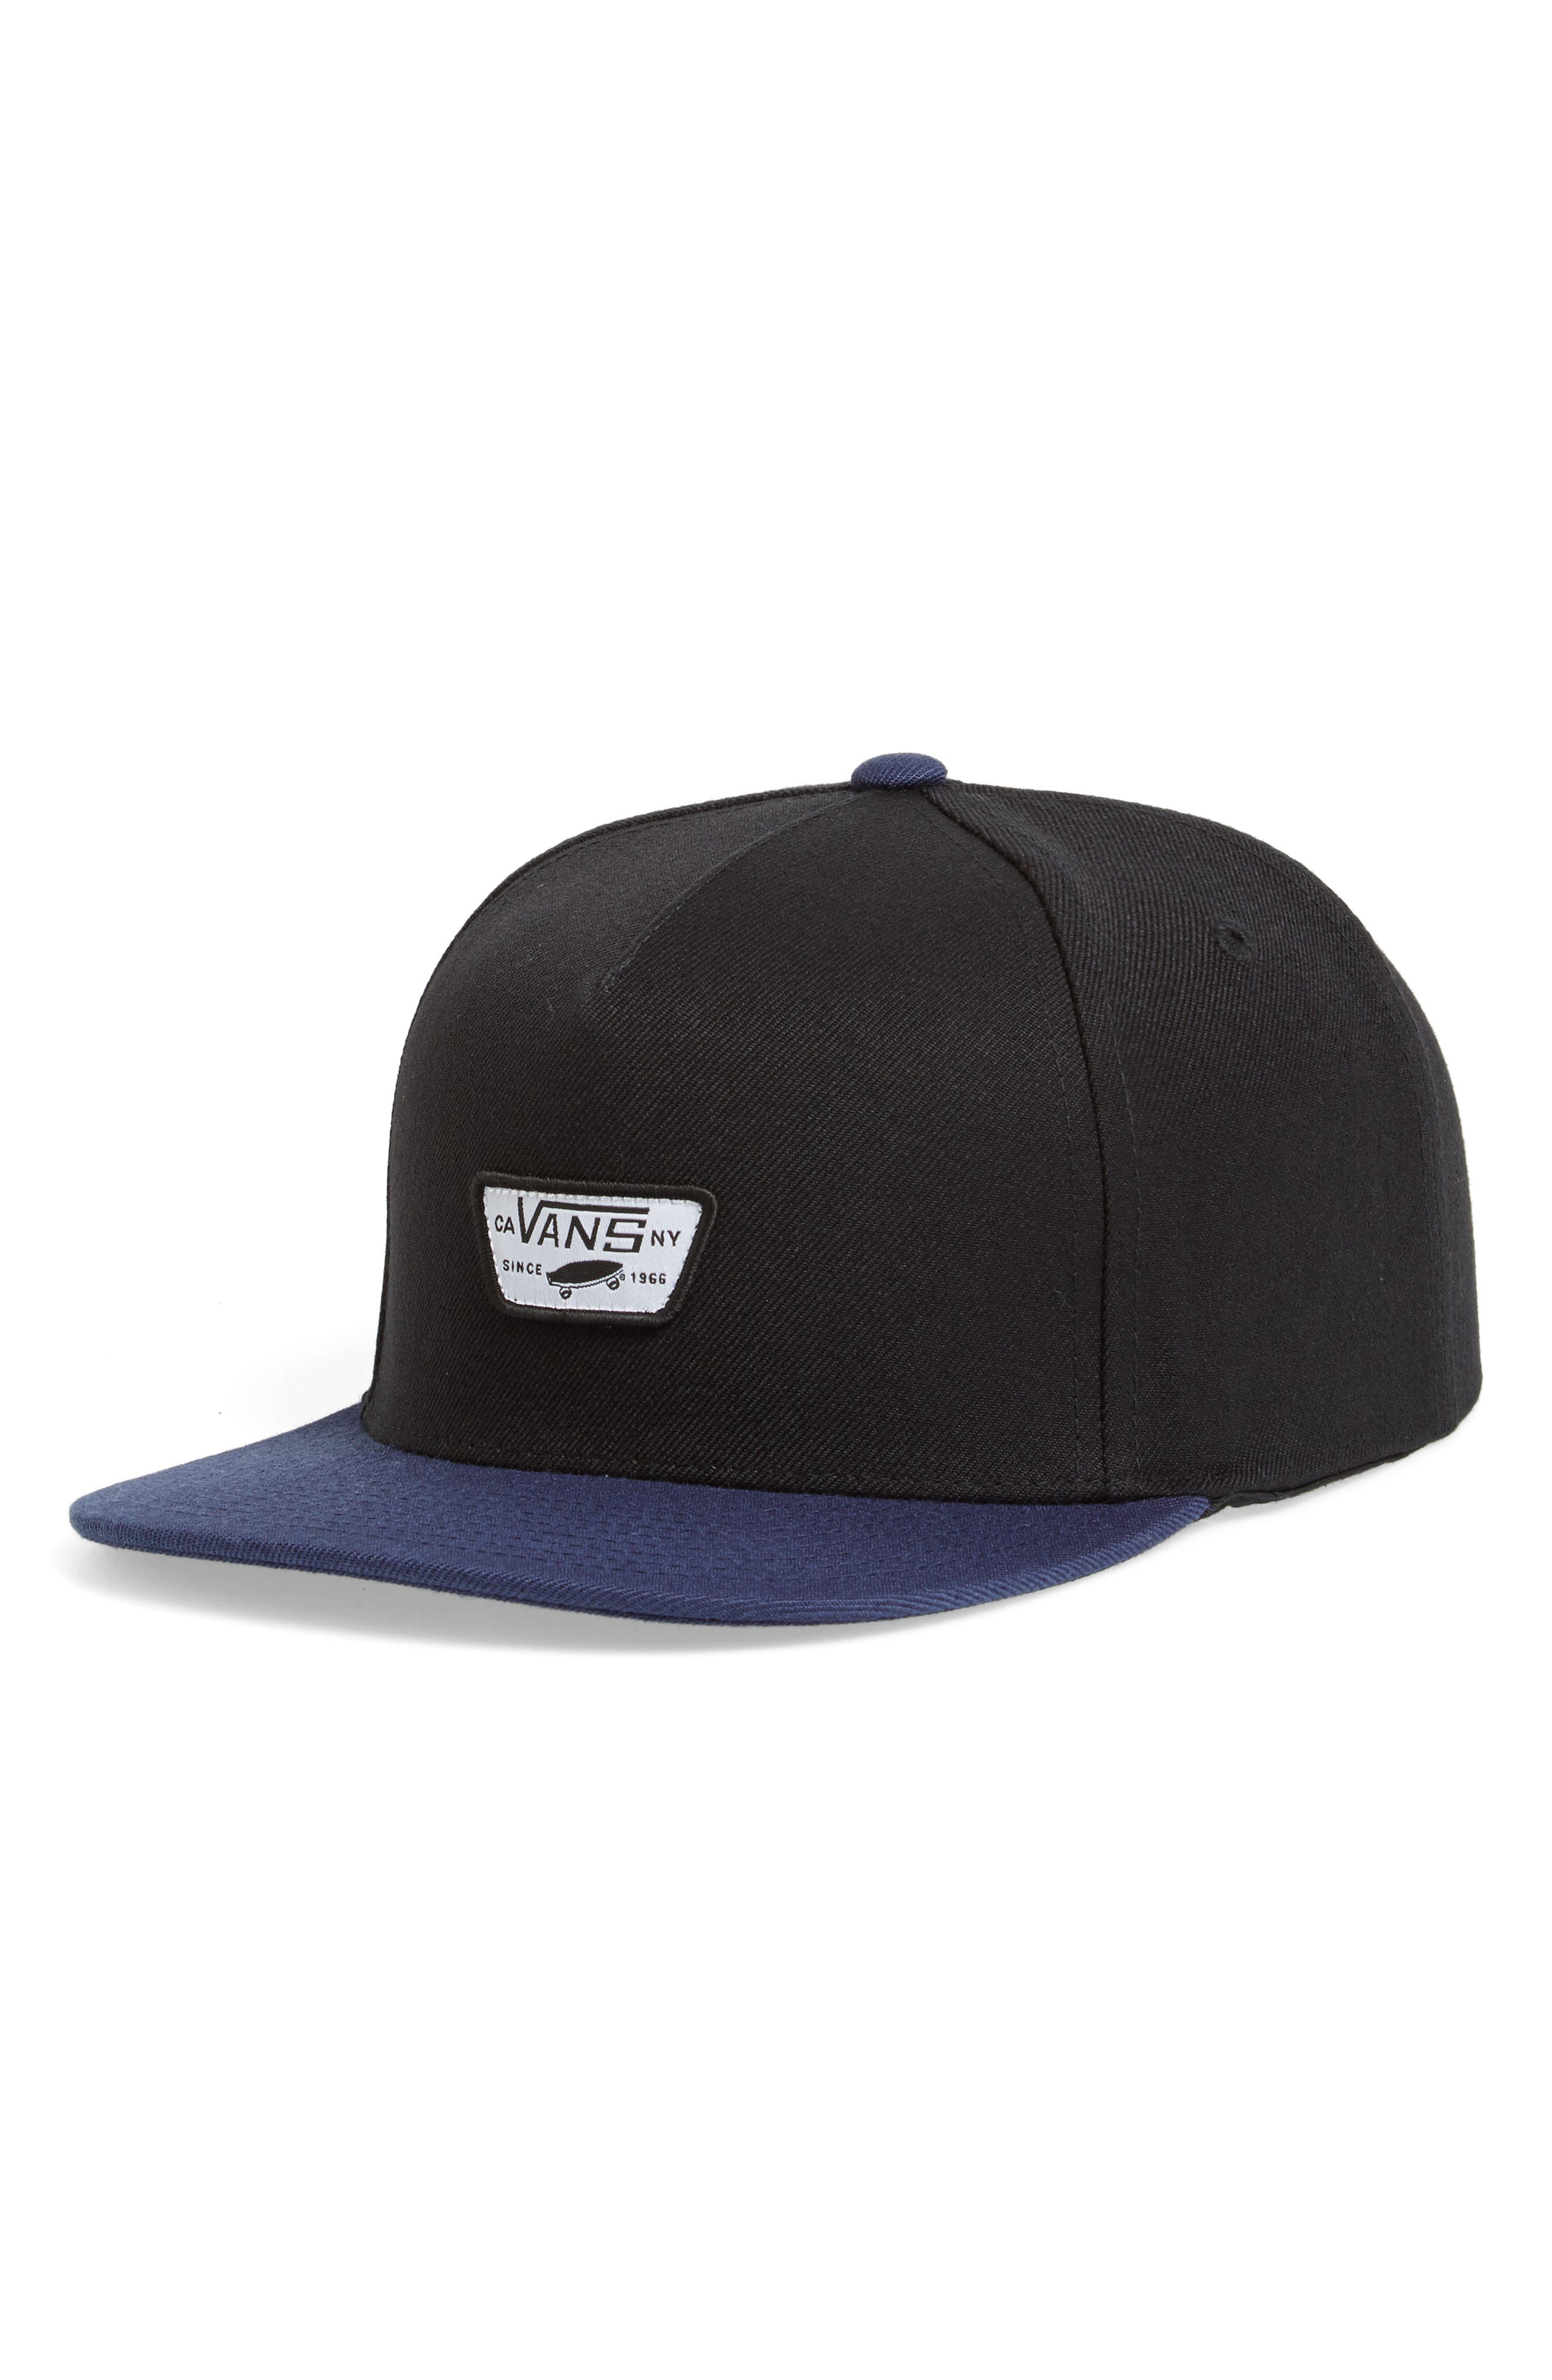 Main Image - Vans Mini Patch II Snapback Cap